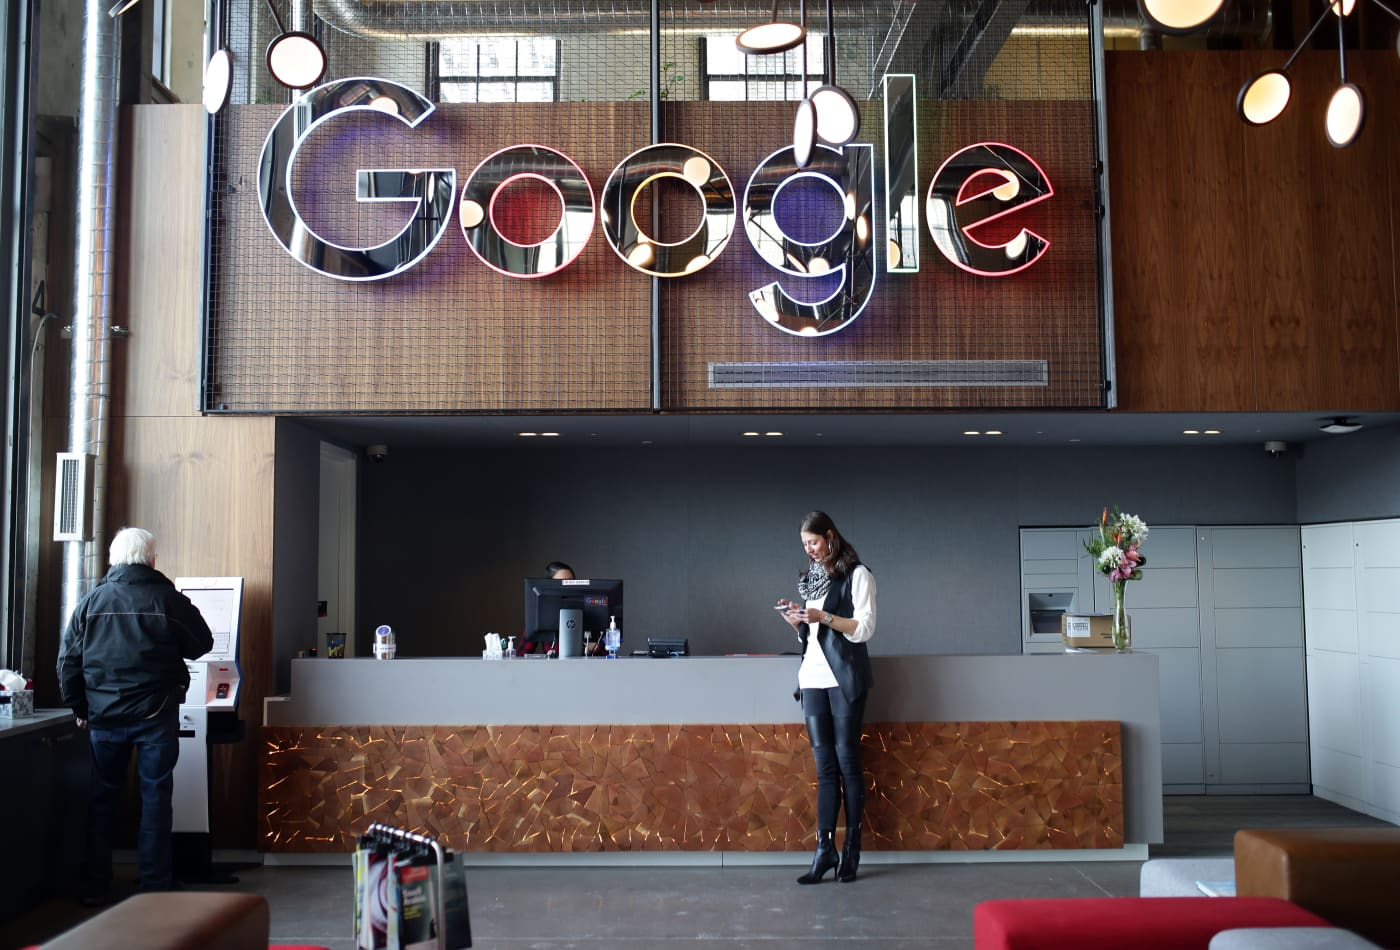 Glassdoor: The 10 highest-paying jobs at Google all pay over